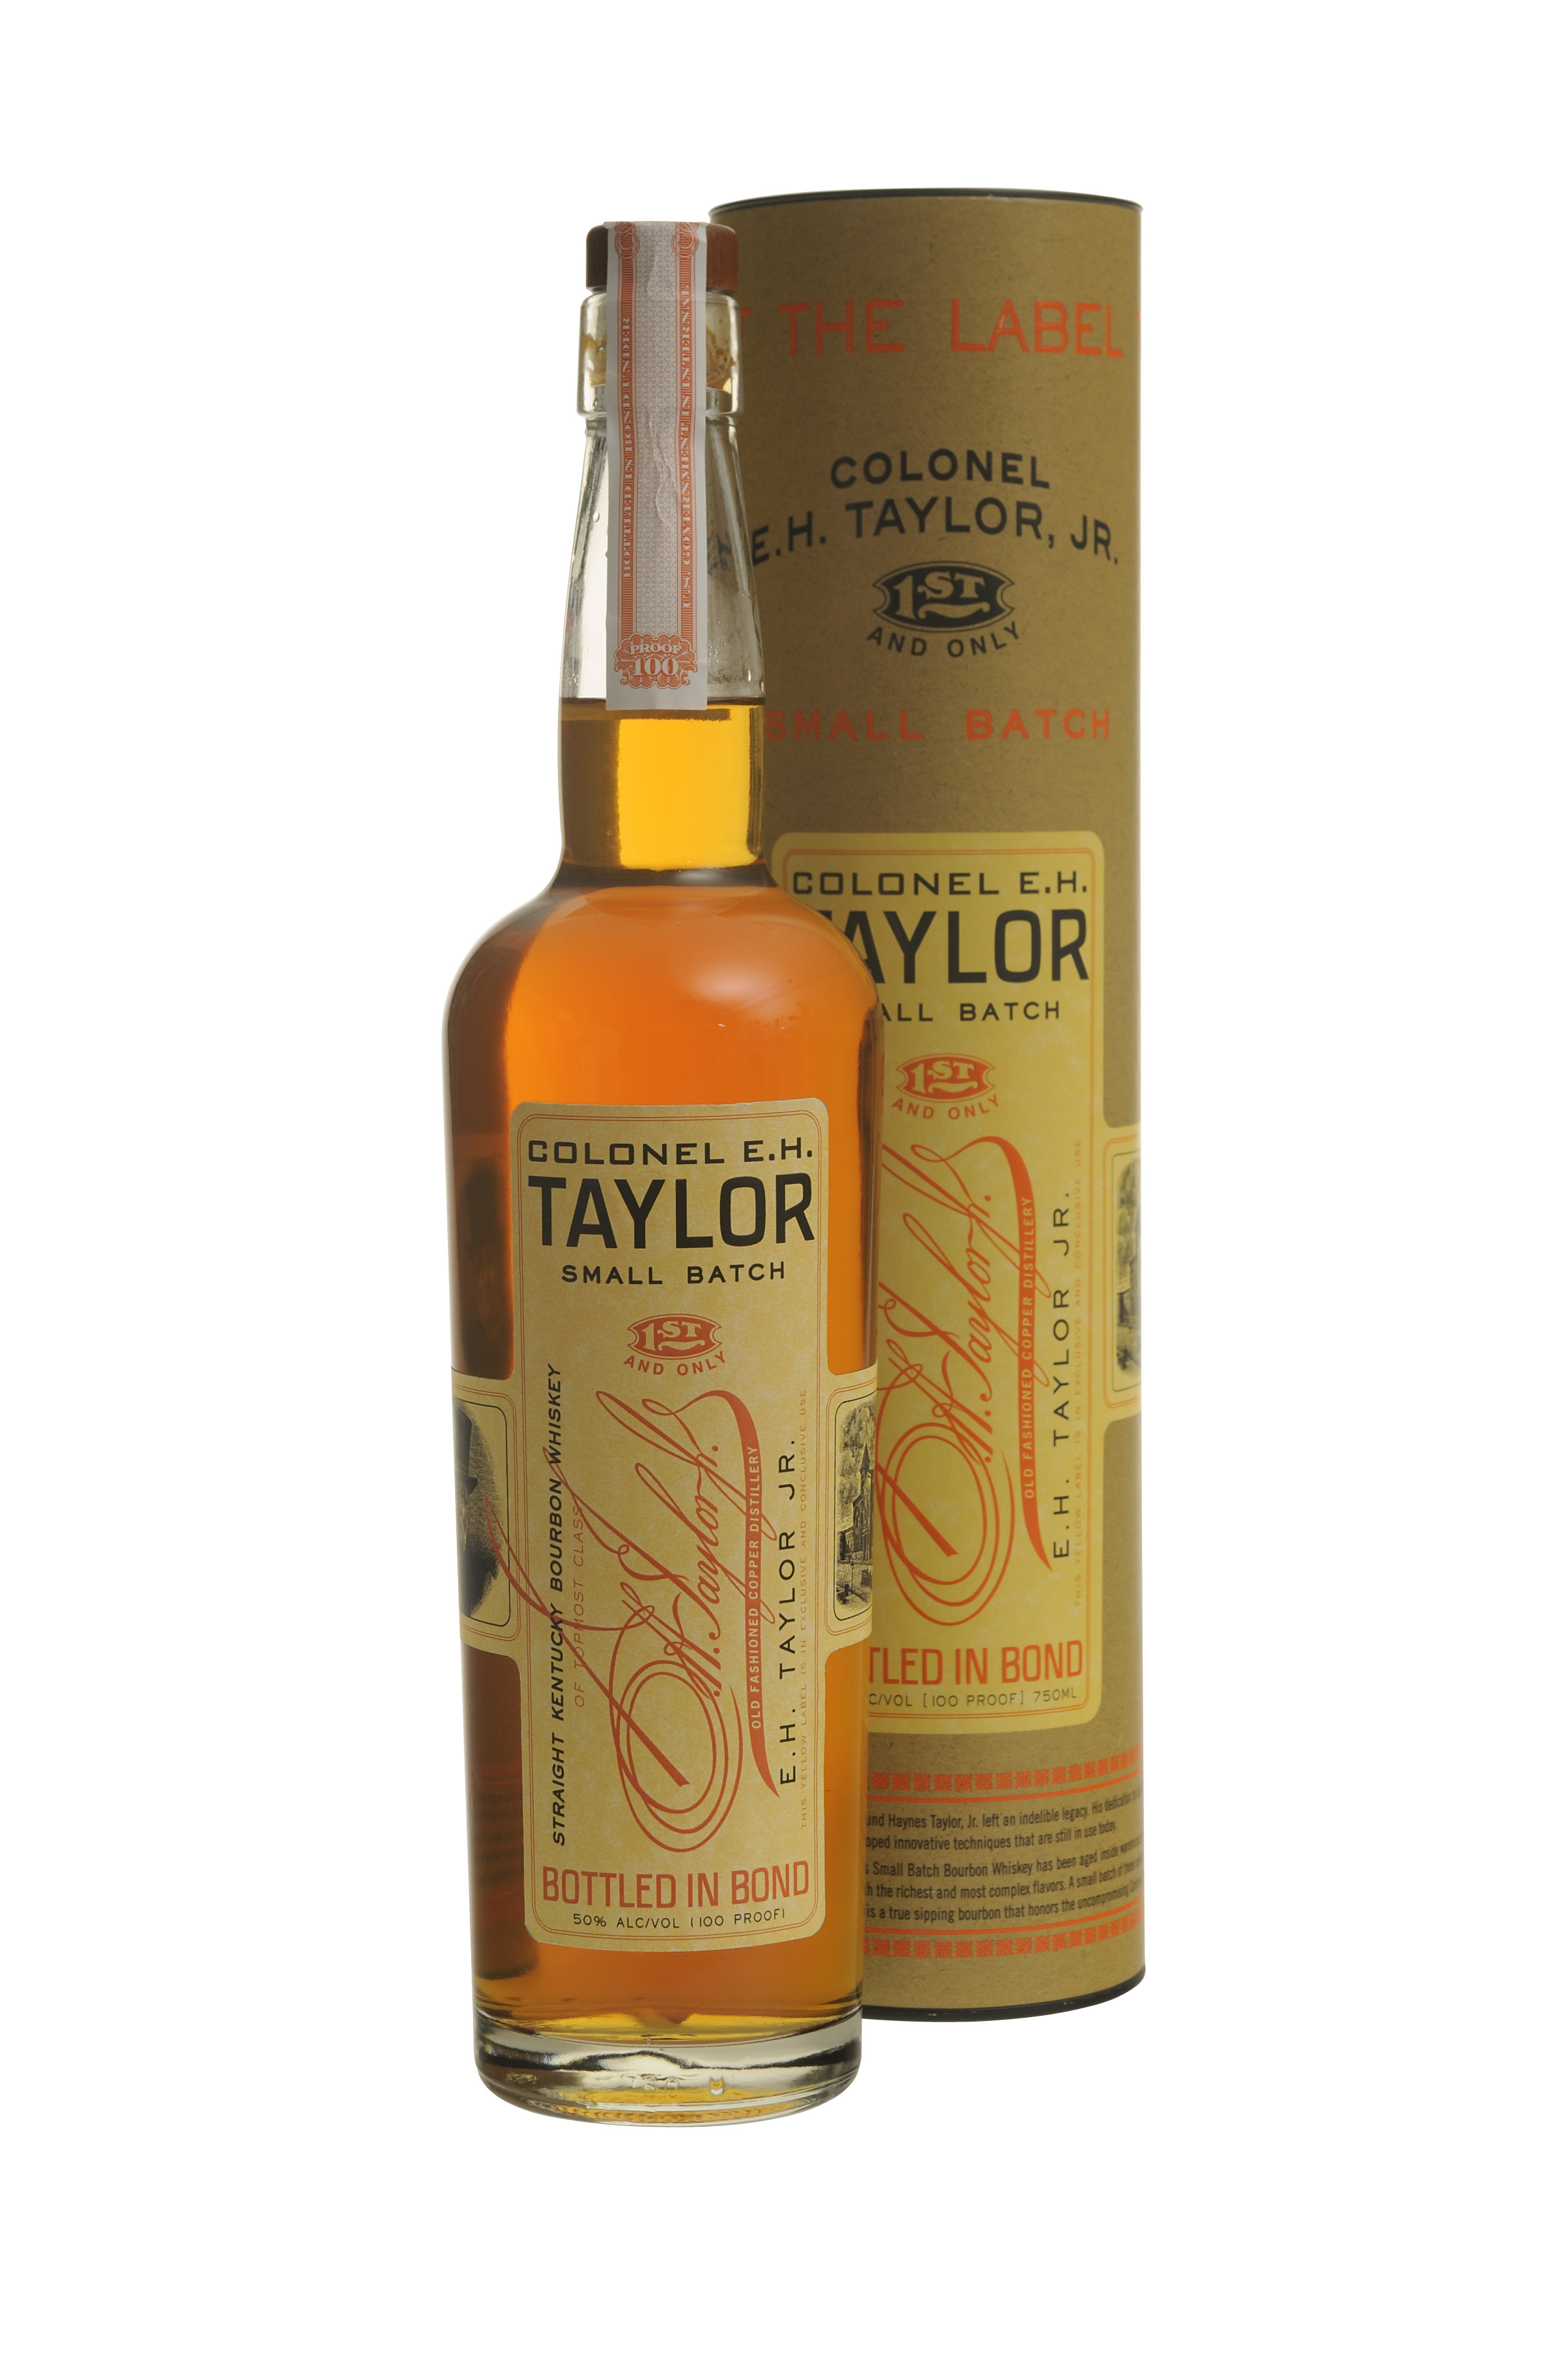 Review: Col. E.H. Taylor Small Batch Bourbon - Drinkhacker: The Insider's Guide to Good Drinking